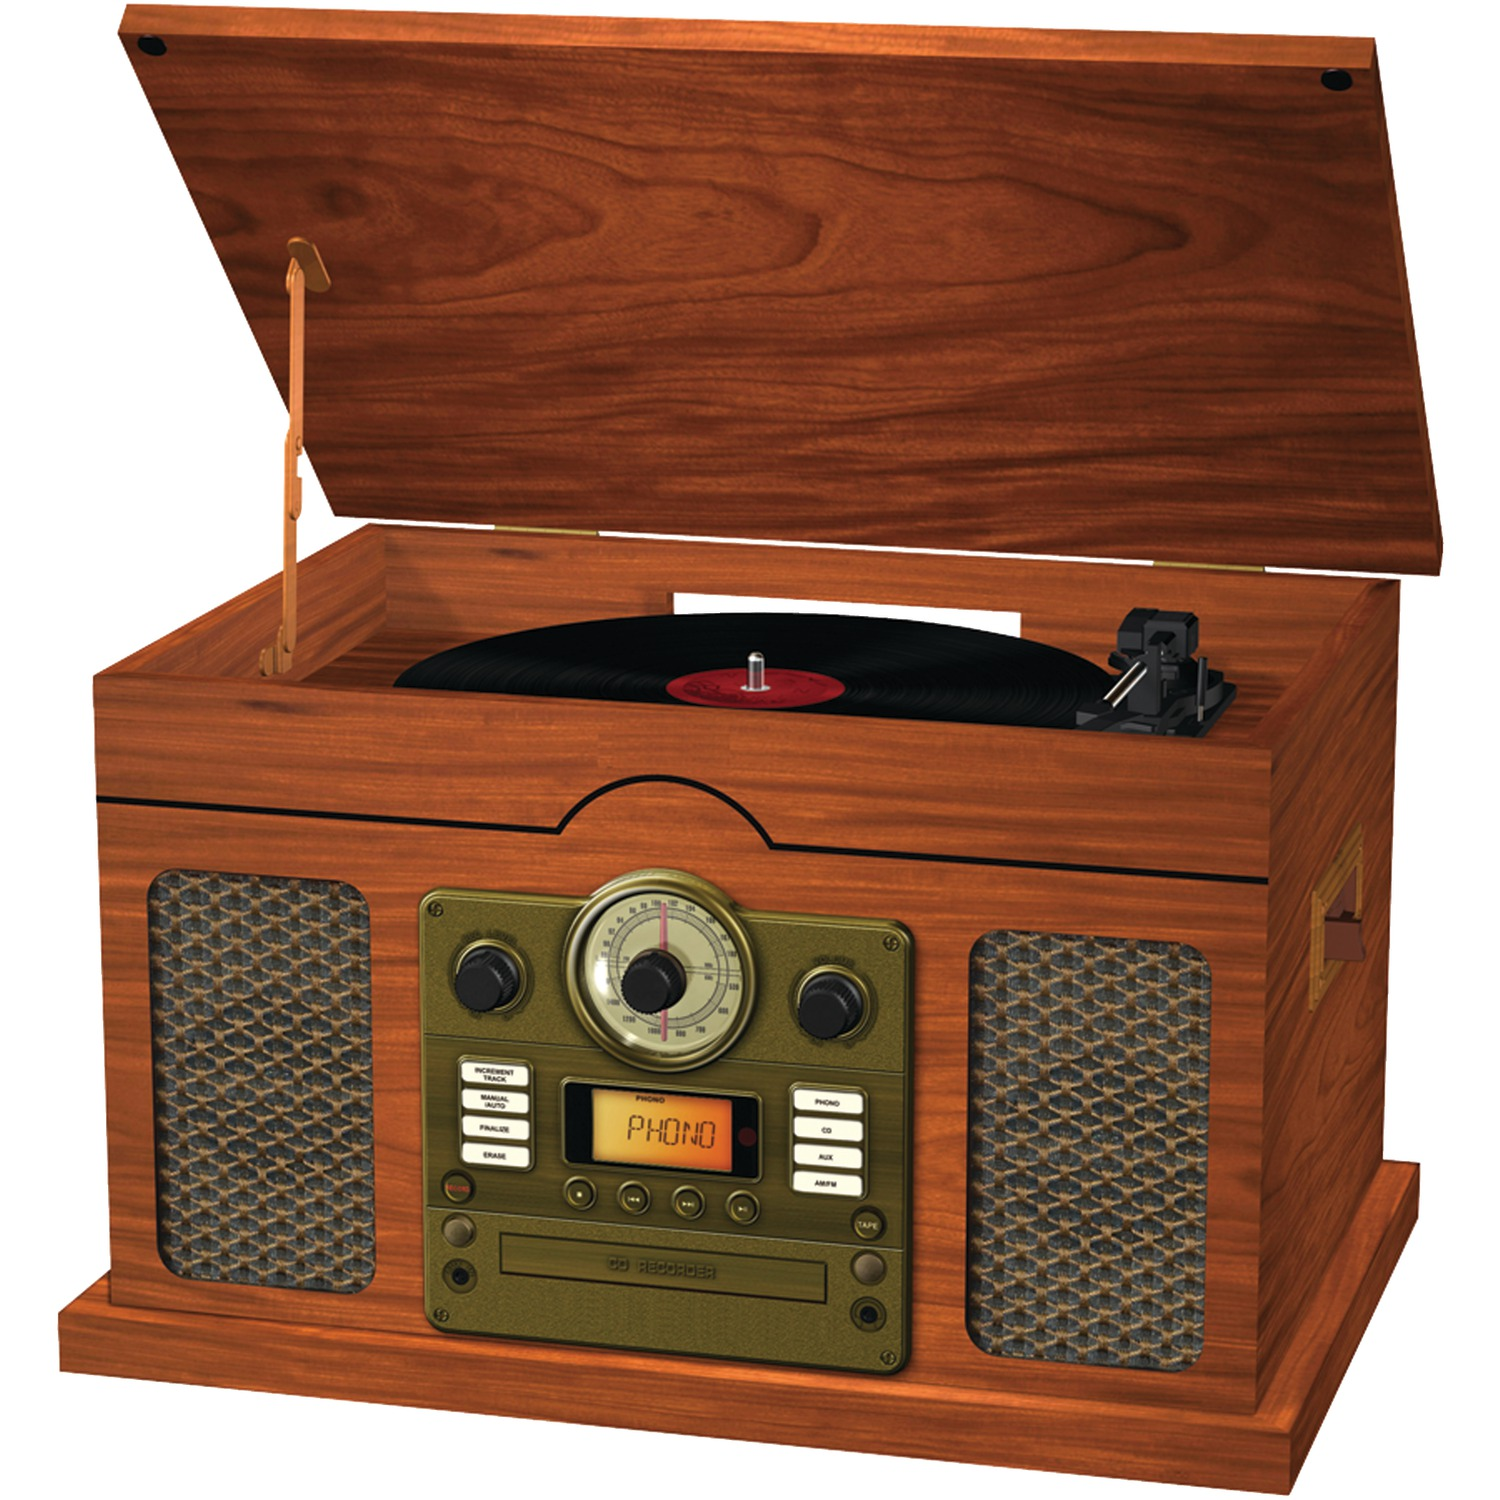 SYLVANIA SRCD844 Nostalgia 7-in-1 with Bluetooth(R) Turntable